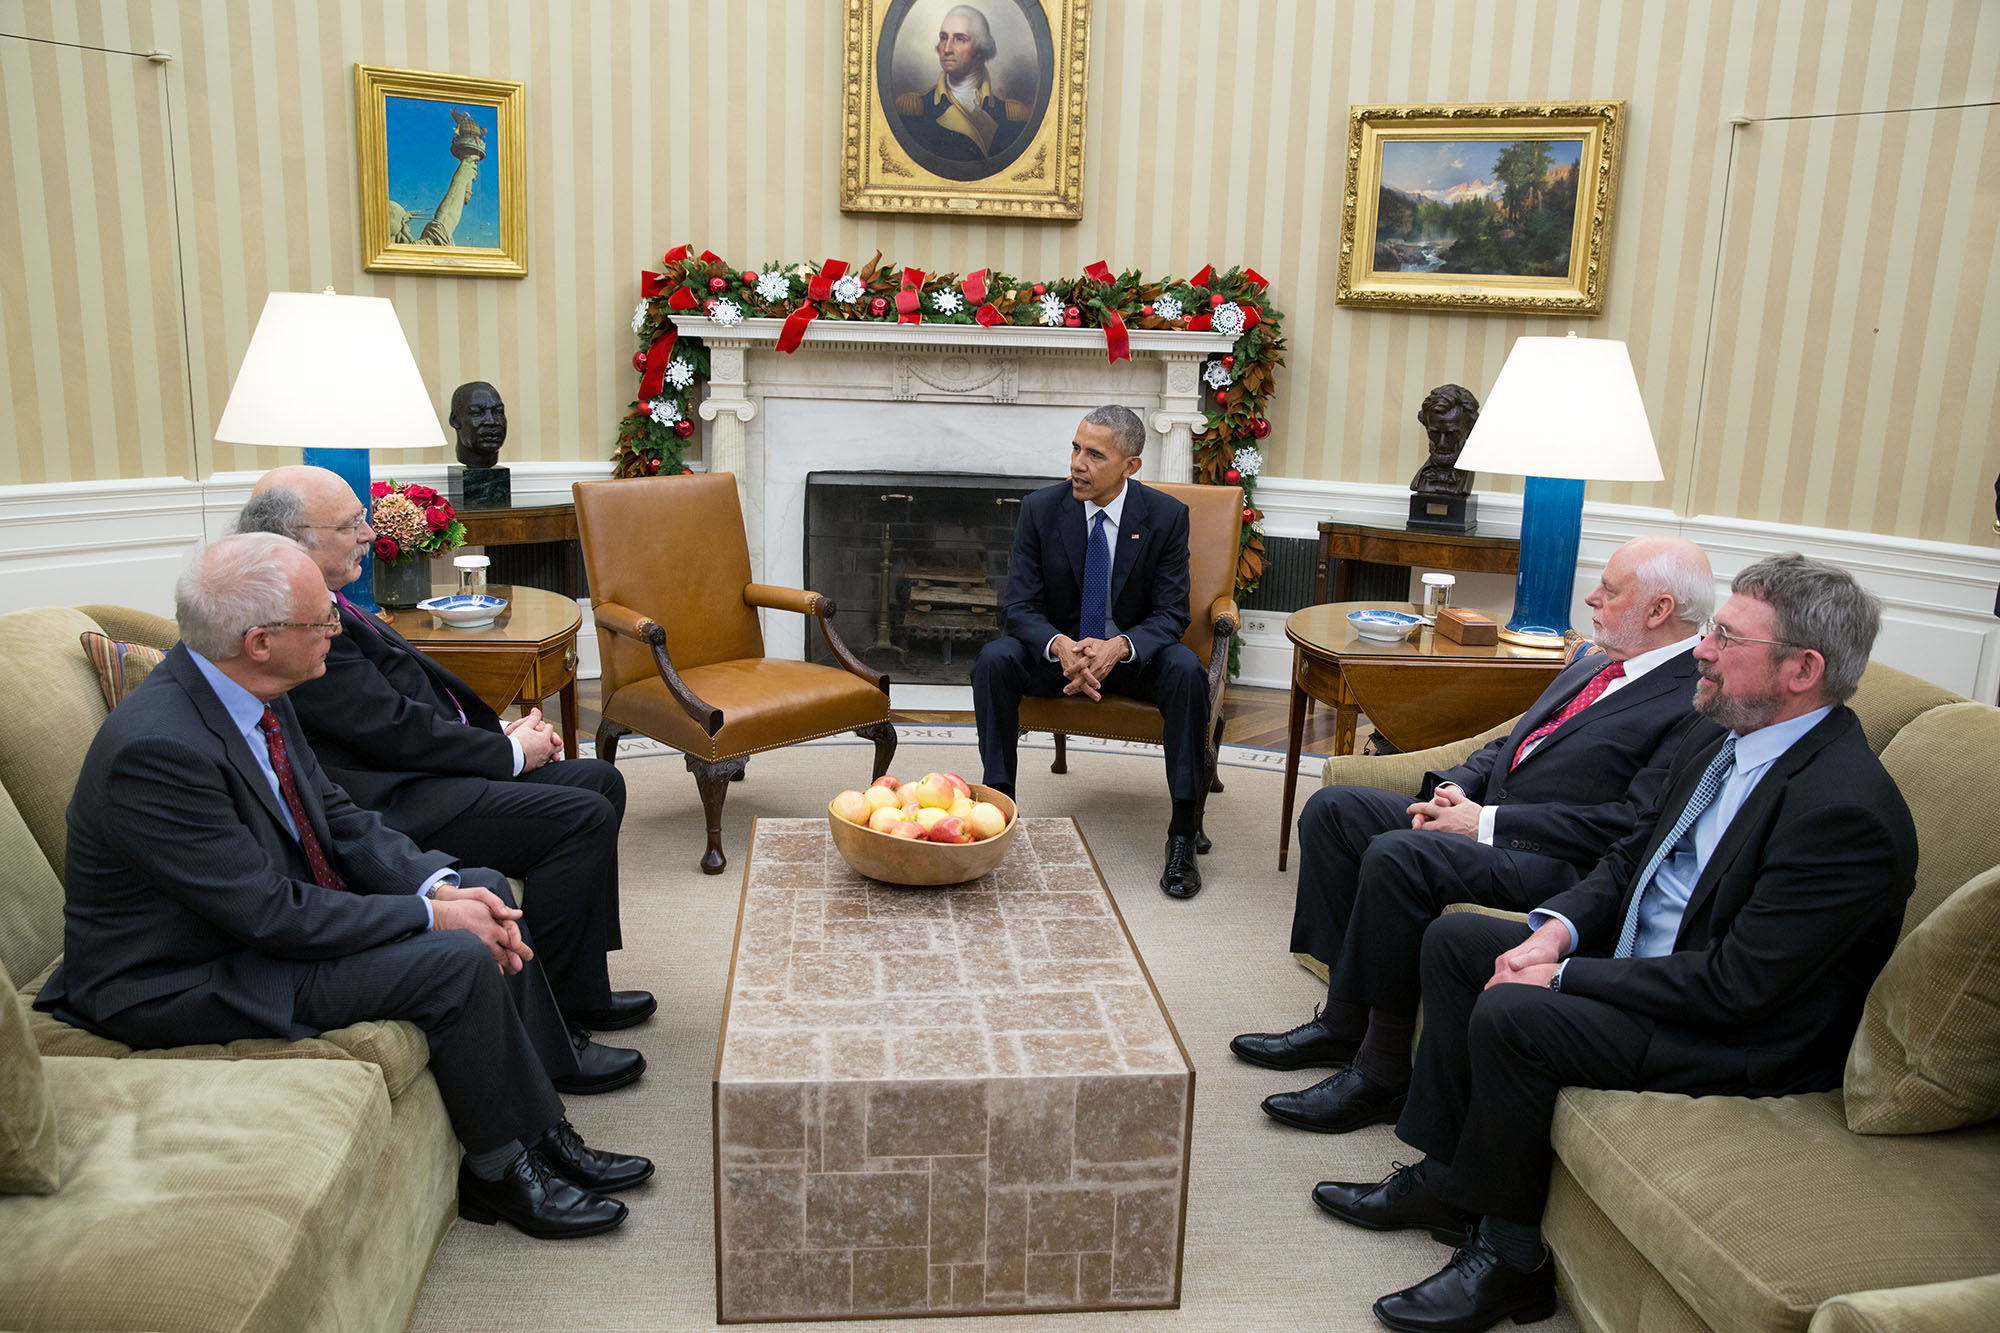 President Barack Obama greets the 2016 American Nobel Prize winners in the Oval Office, Nov. 30, 2016. From left are: Oliver Hart, Laureate of the 2016 Nobel Prize in Economic Sciences, from Harvard University, F. Duncan M. Haldane, Laureate of the 2016 Nobel Prize in Physics from Princeton University, Sir J. Fraser Stoddart, Laureate of the 2016 Nobel Prize in Chemistry from Northwestern University, and J. Michael Kosterlitz, Laureate of the 2016 Nobel Prize in Physics, from Brown University. (Official White House Photo by Pete Souza)